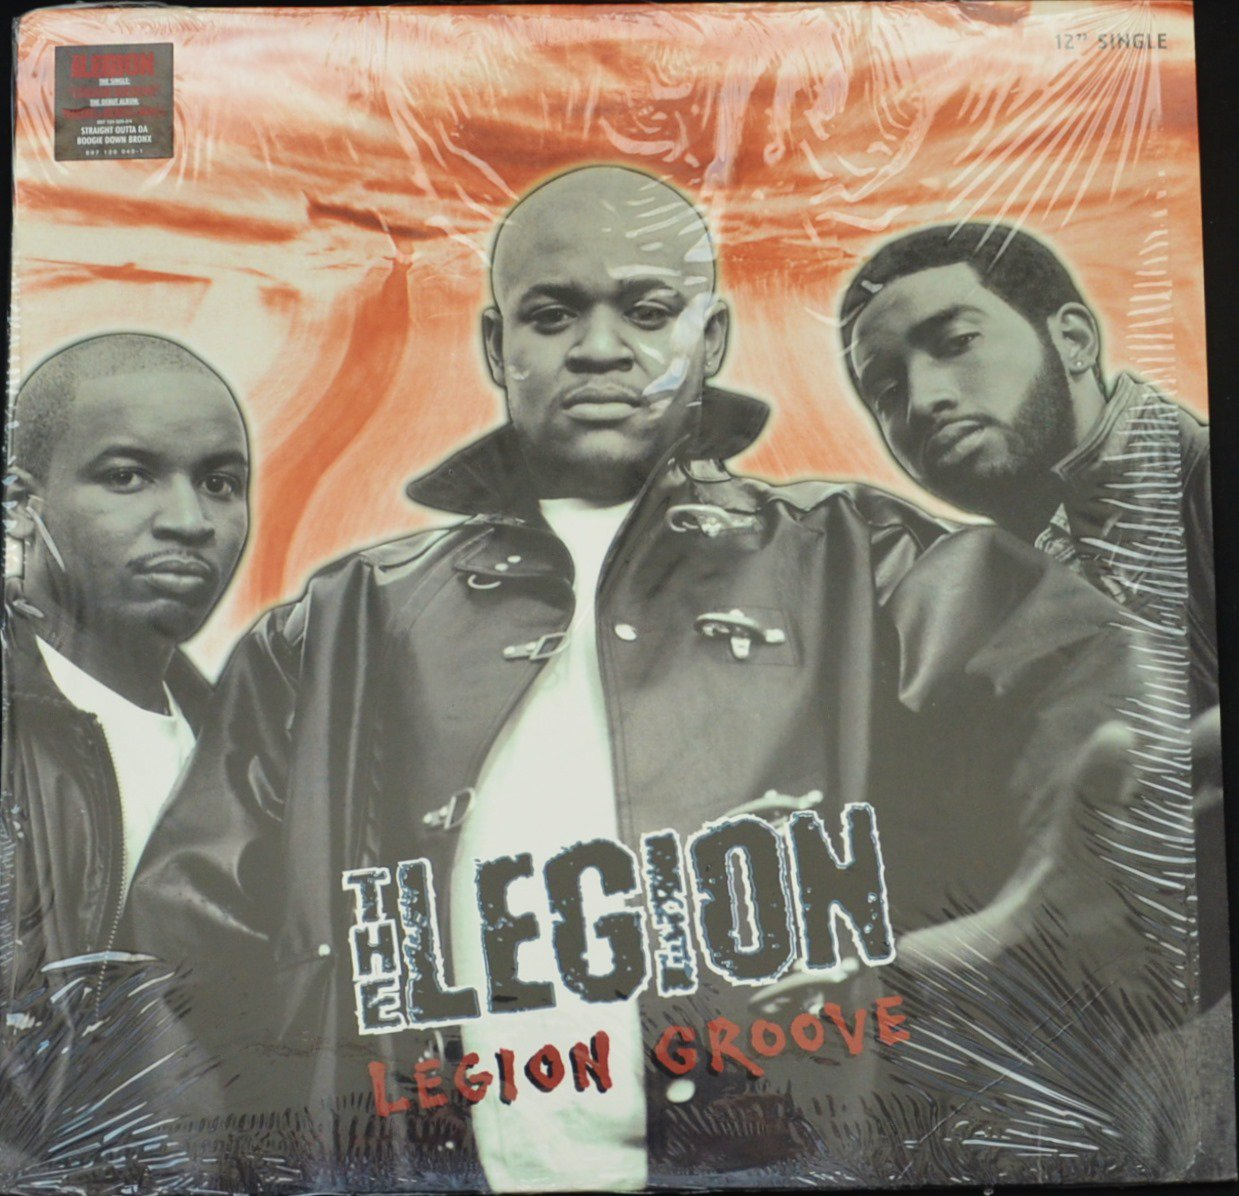 THE LEGION / LEGION GROOVE / BACK IN THE DAYS / IT'S THOROUGH (12